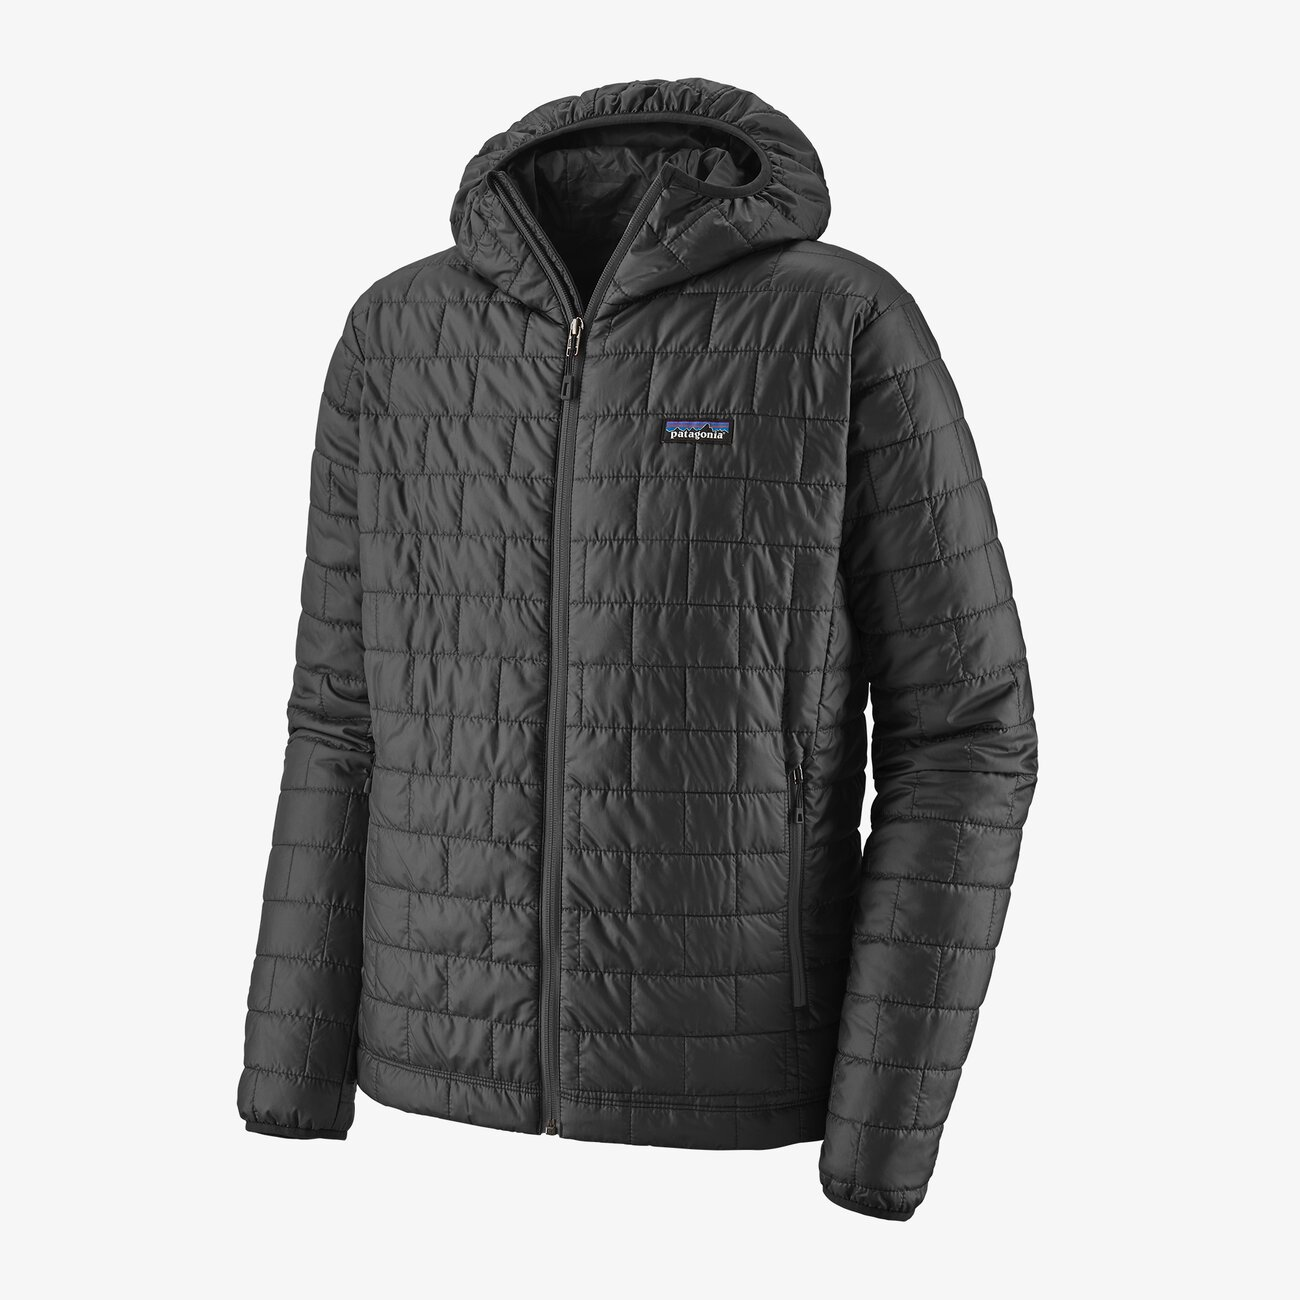 lightweight Patagonia down jacket for travel